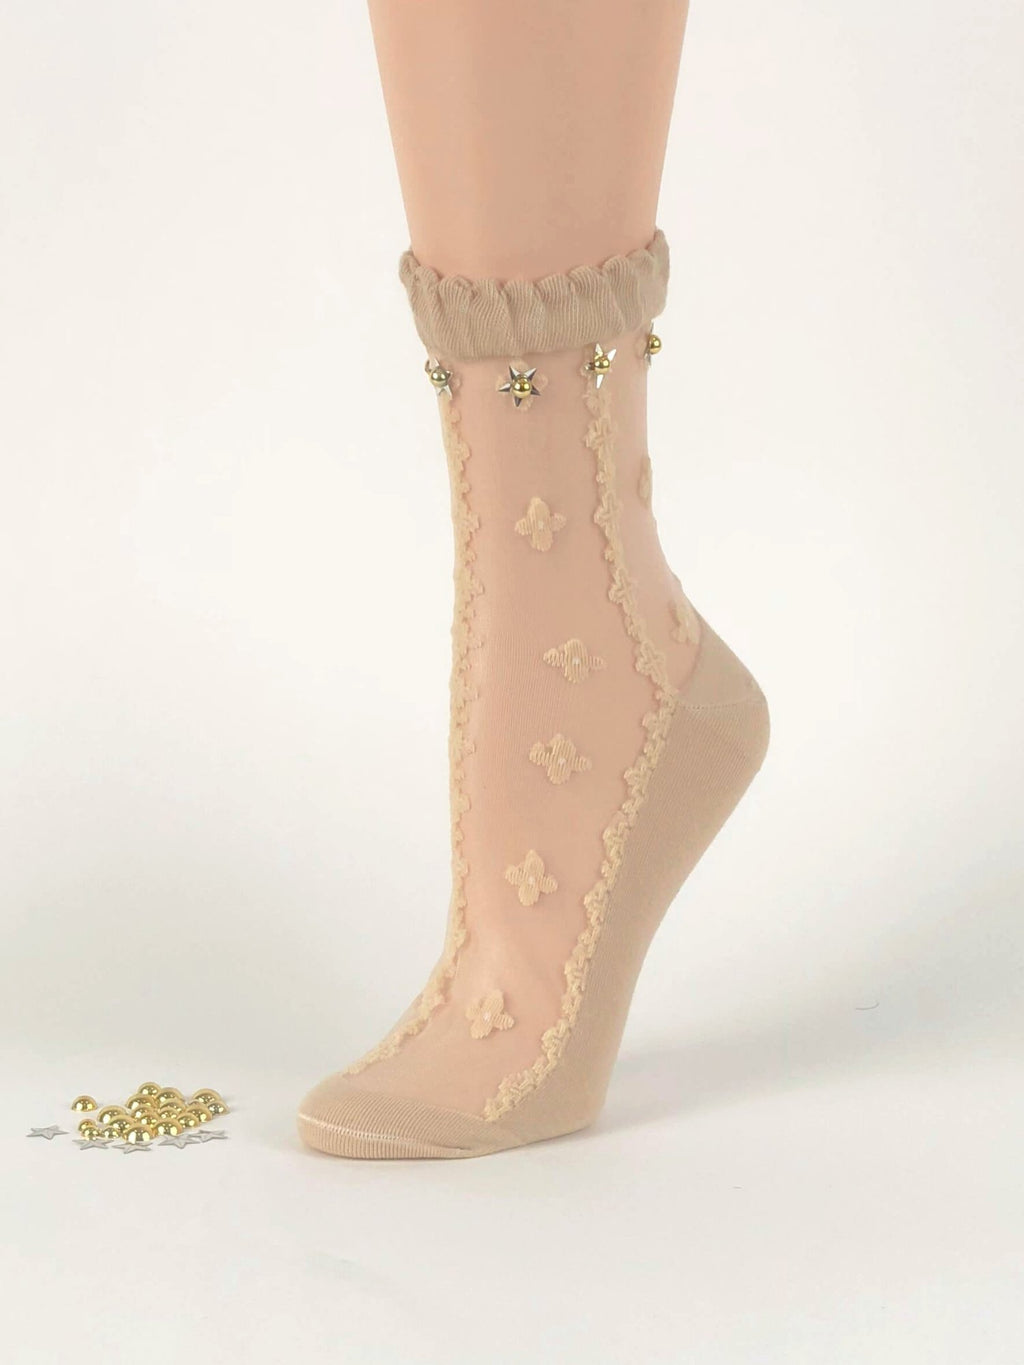 Pearled/Patterned Skin Sheer Socks - Global Trendz Fashion®